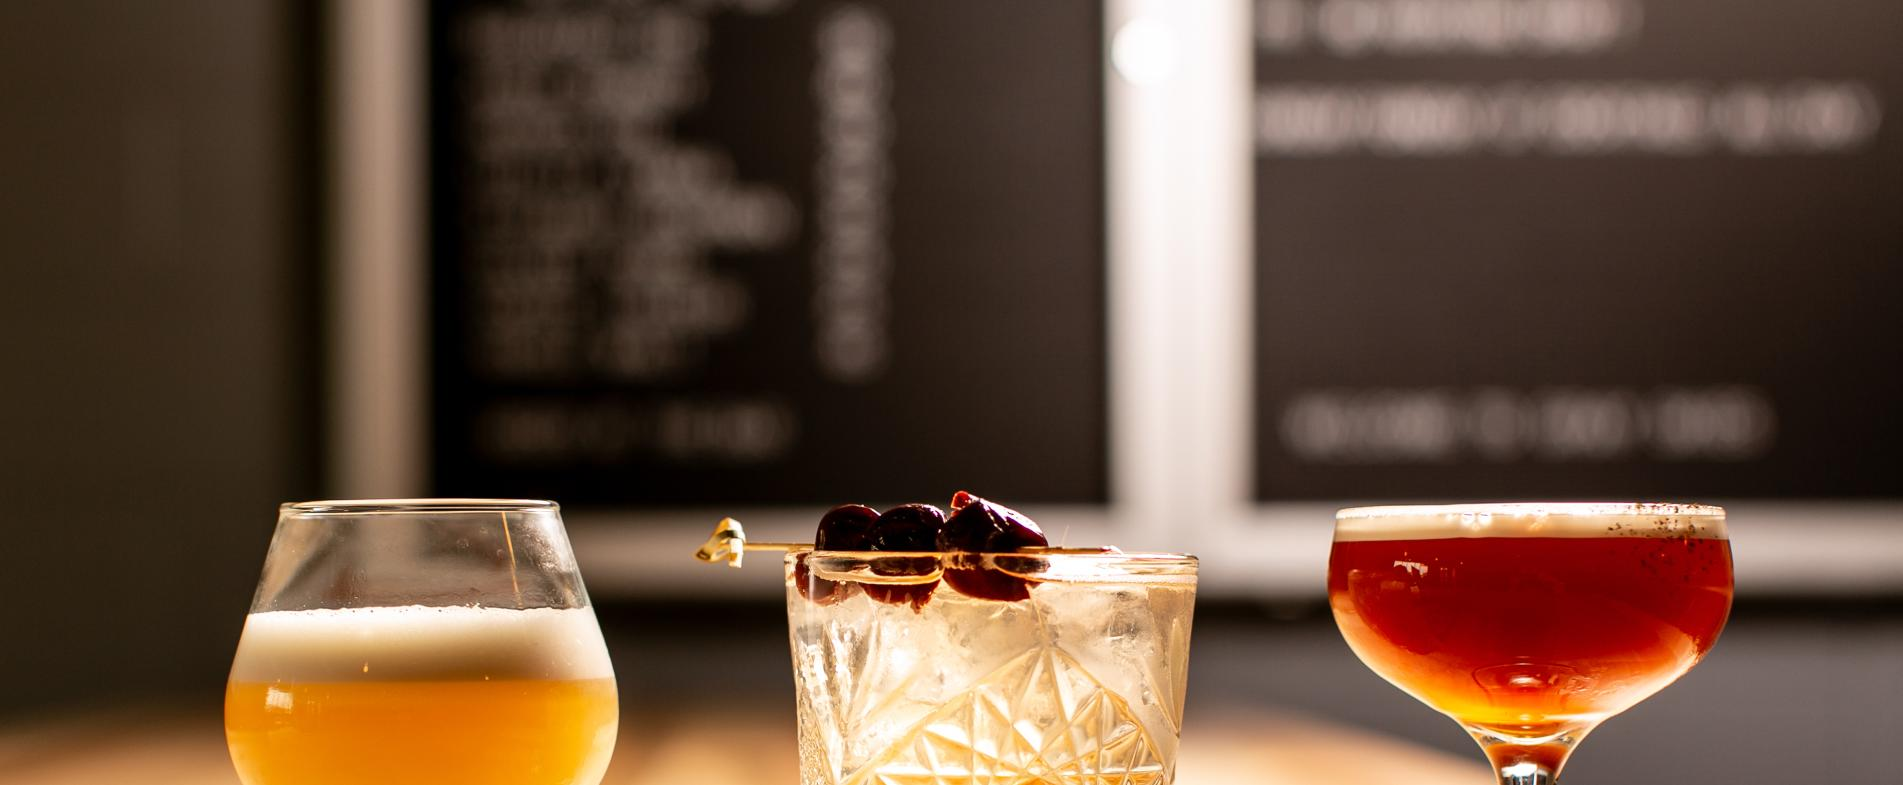 Gray Skies made a selection of rye cocktails for Cocktail Week GR 2018 using hand-crafted ingredients.